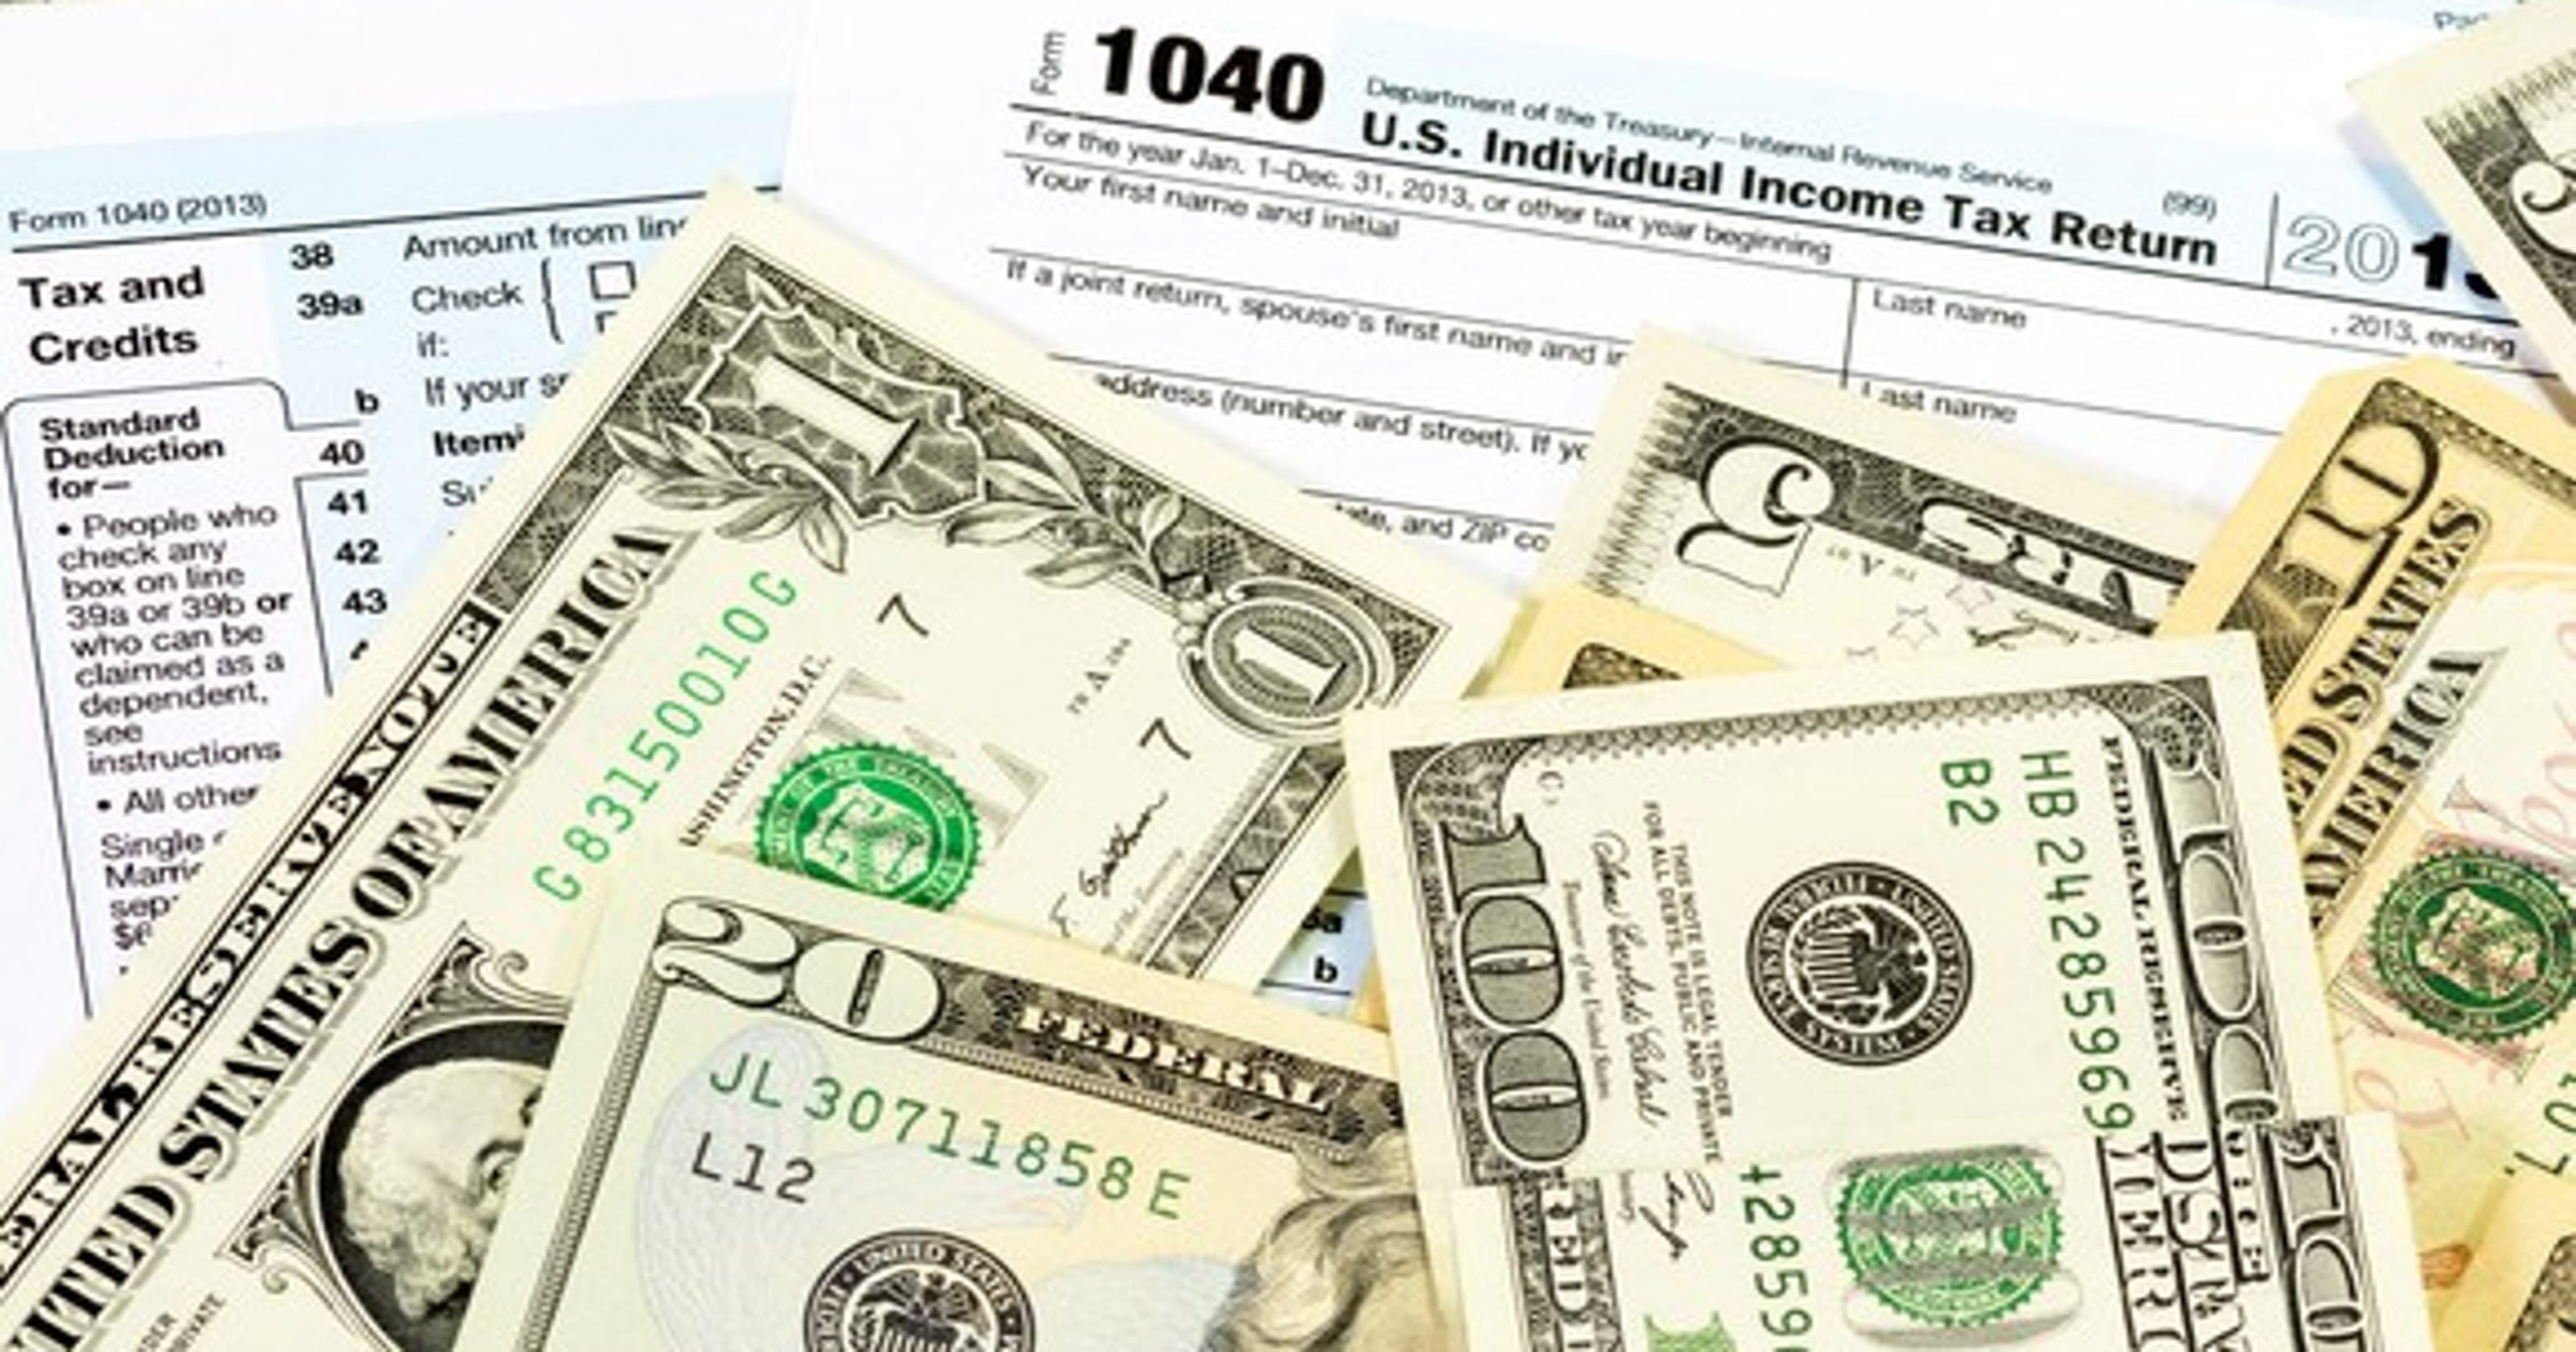 What's the average American's tax rate?